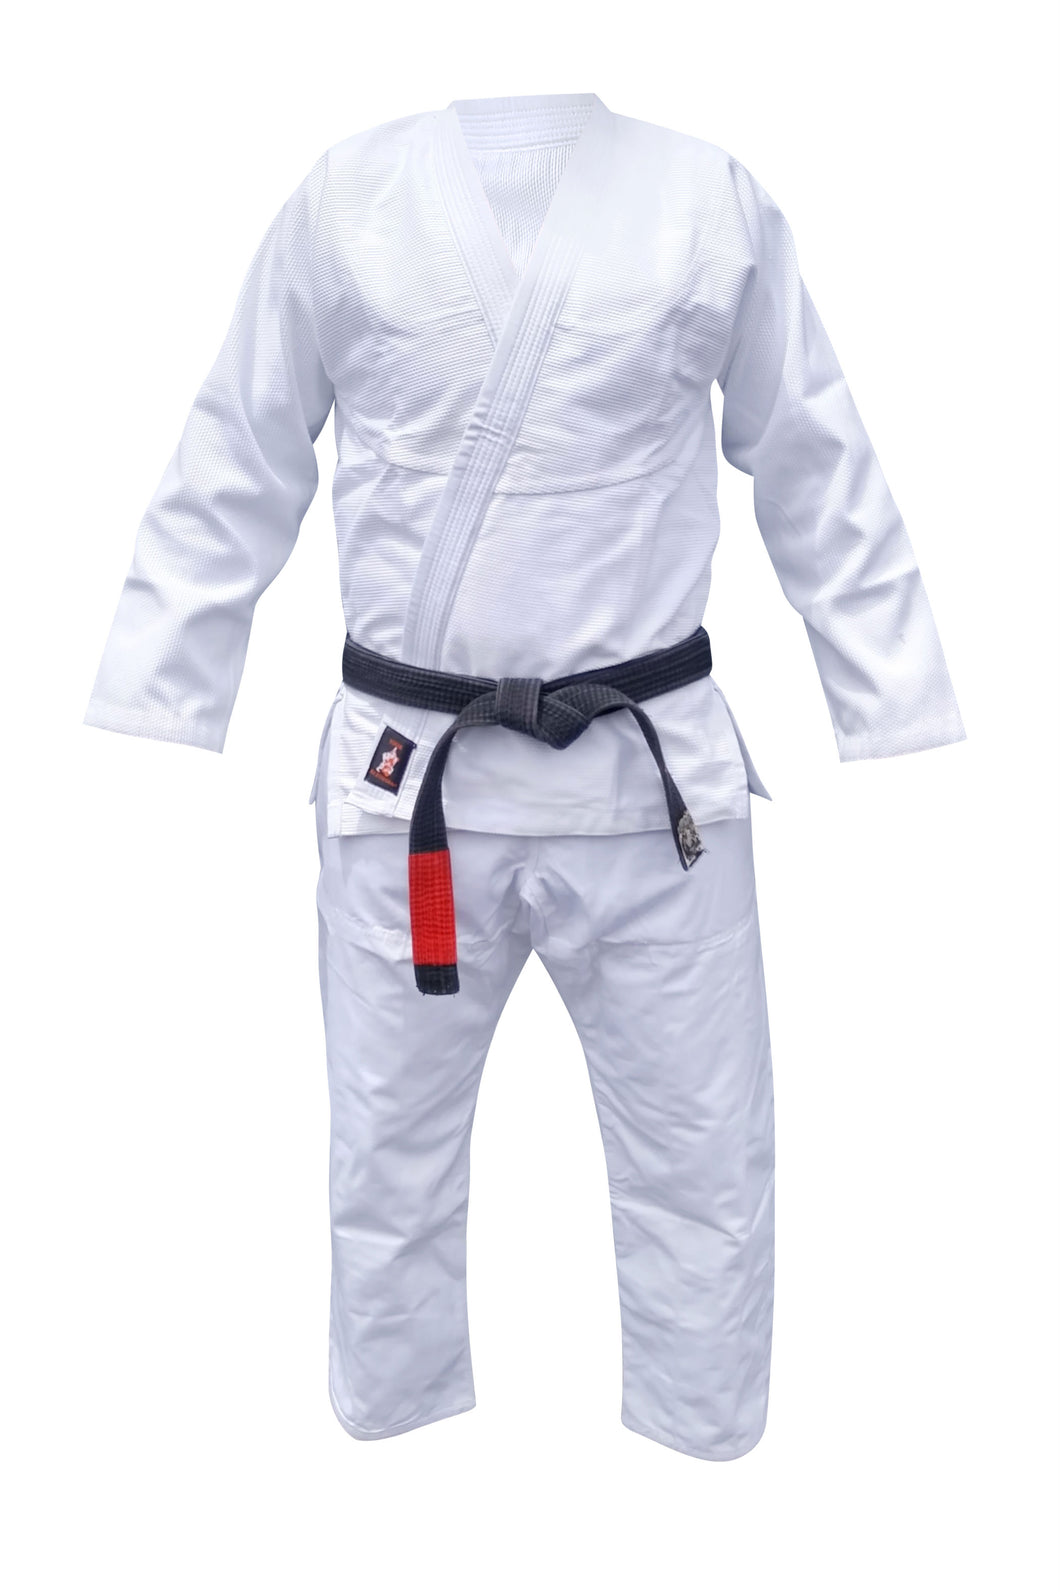 Refurbished YJJG Brazilian Jiu Jitsu Premium 450 White Uniform Free BJJ Belt